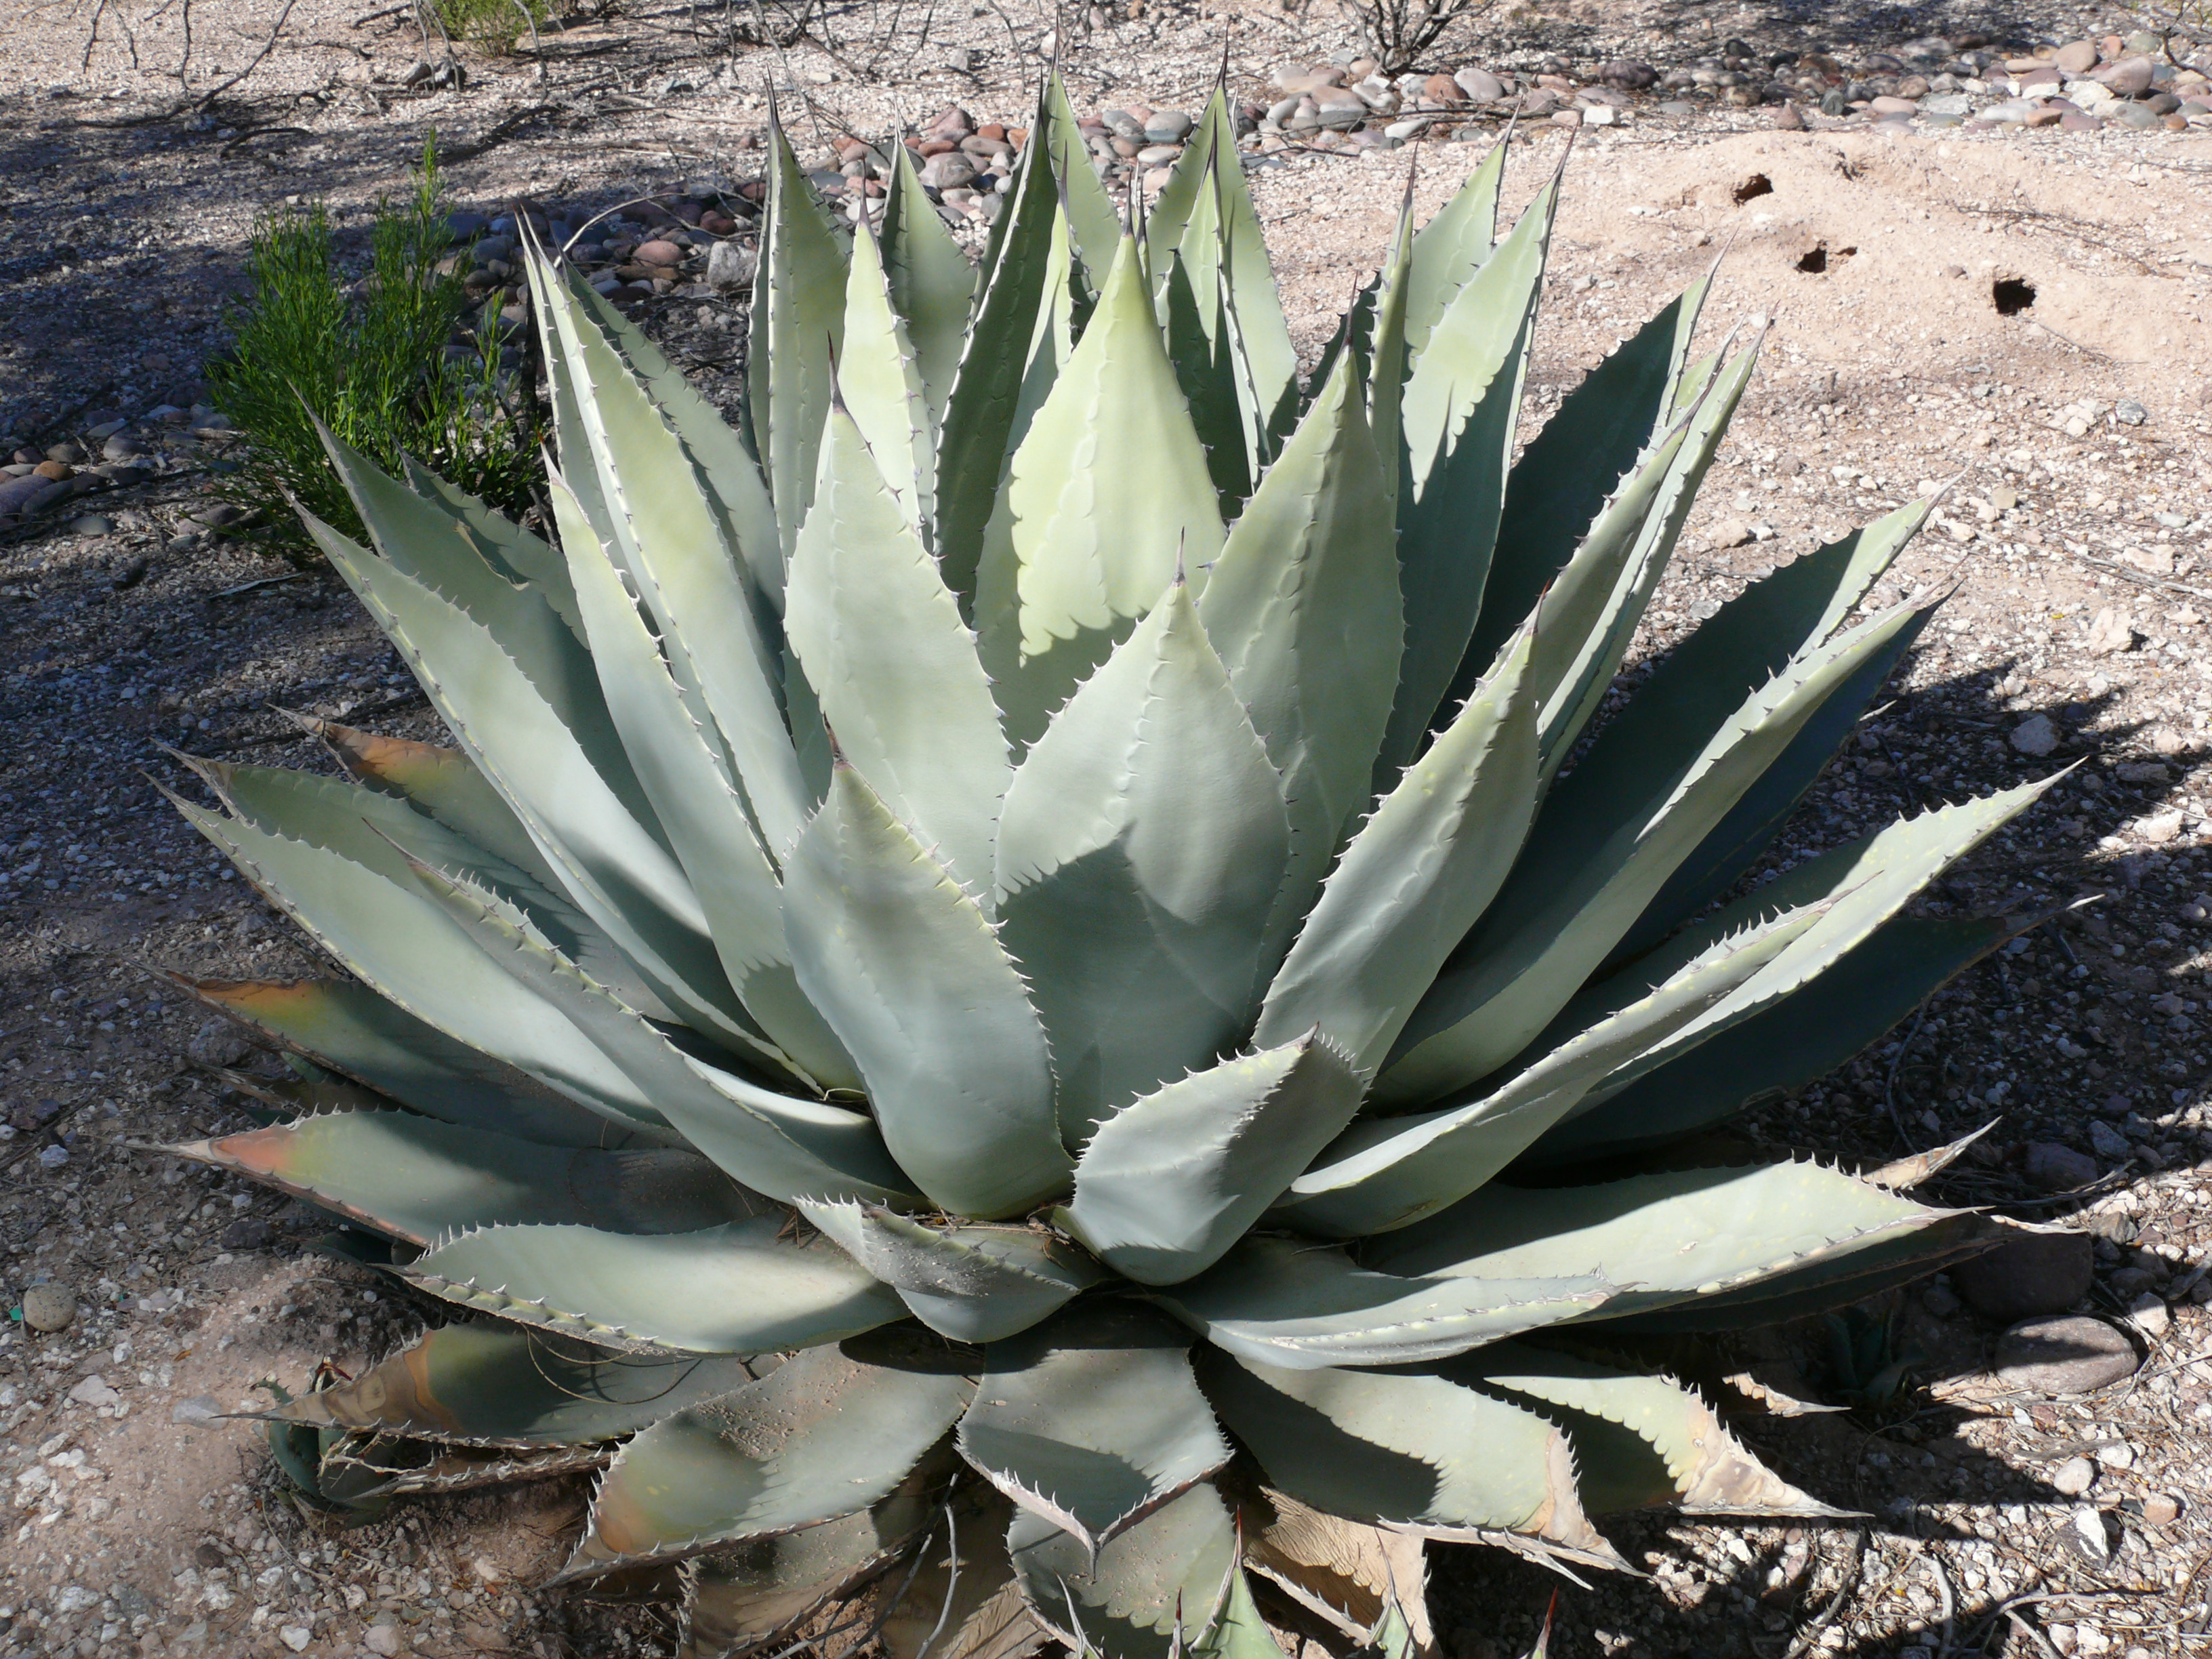 https://upload.wikimedia.org/wikipedia/commons/5/5e/Huachuca_agave.JPG